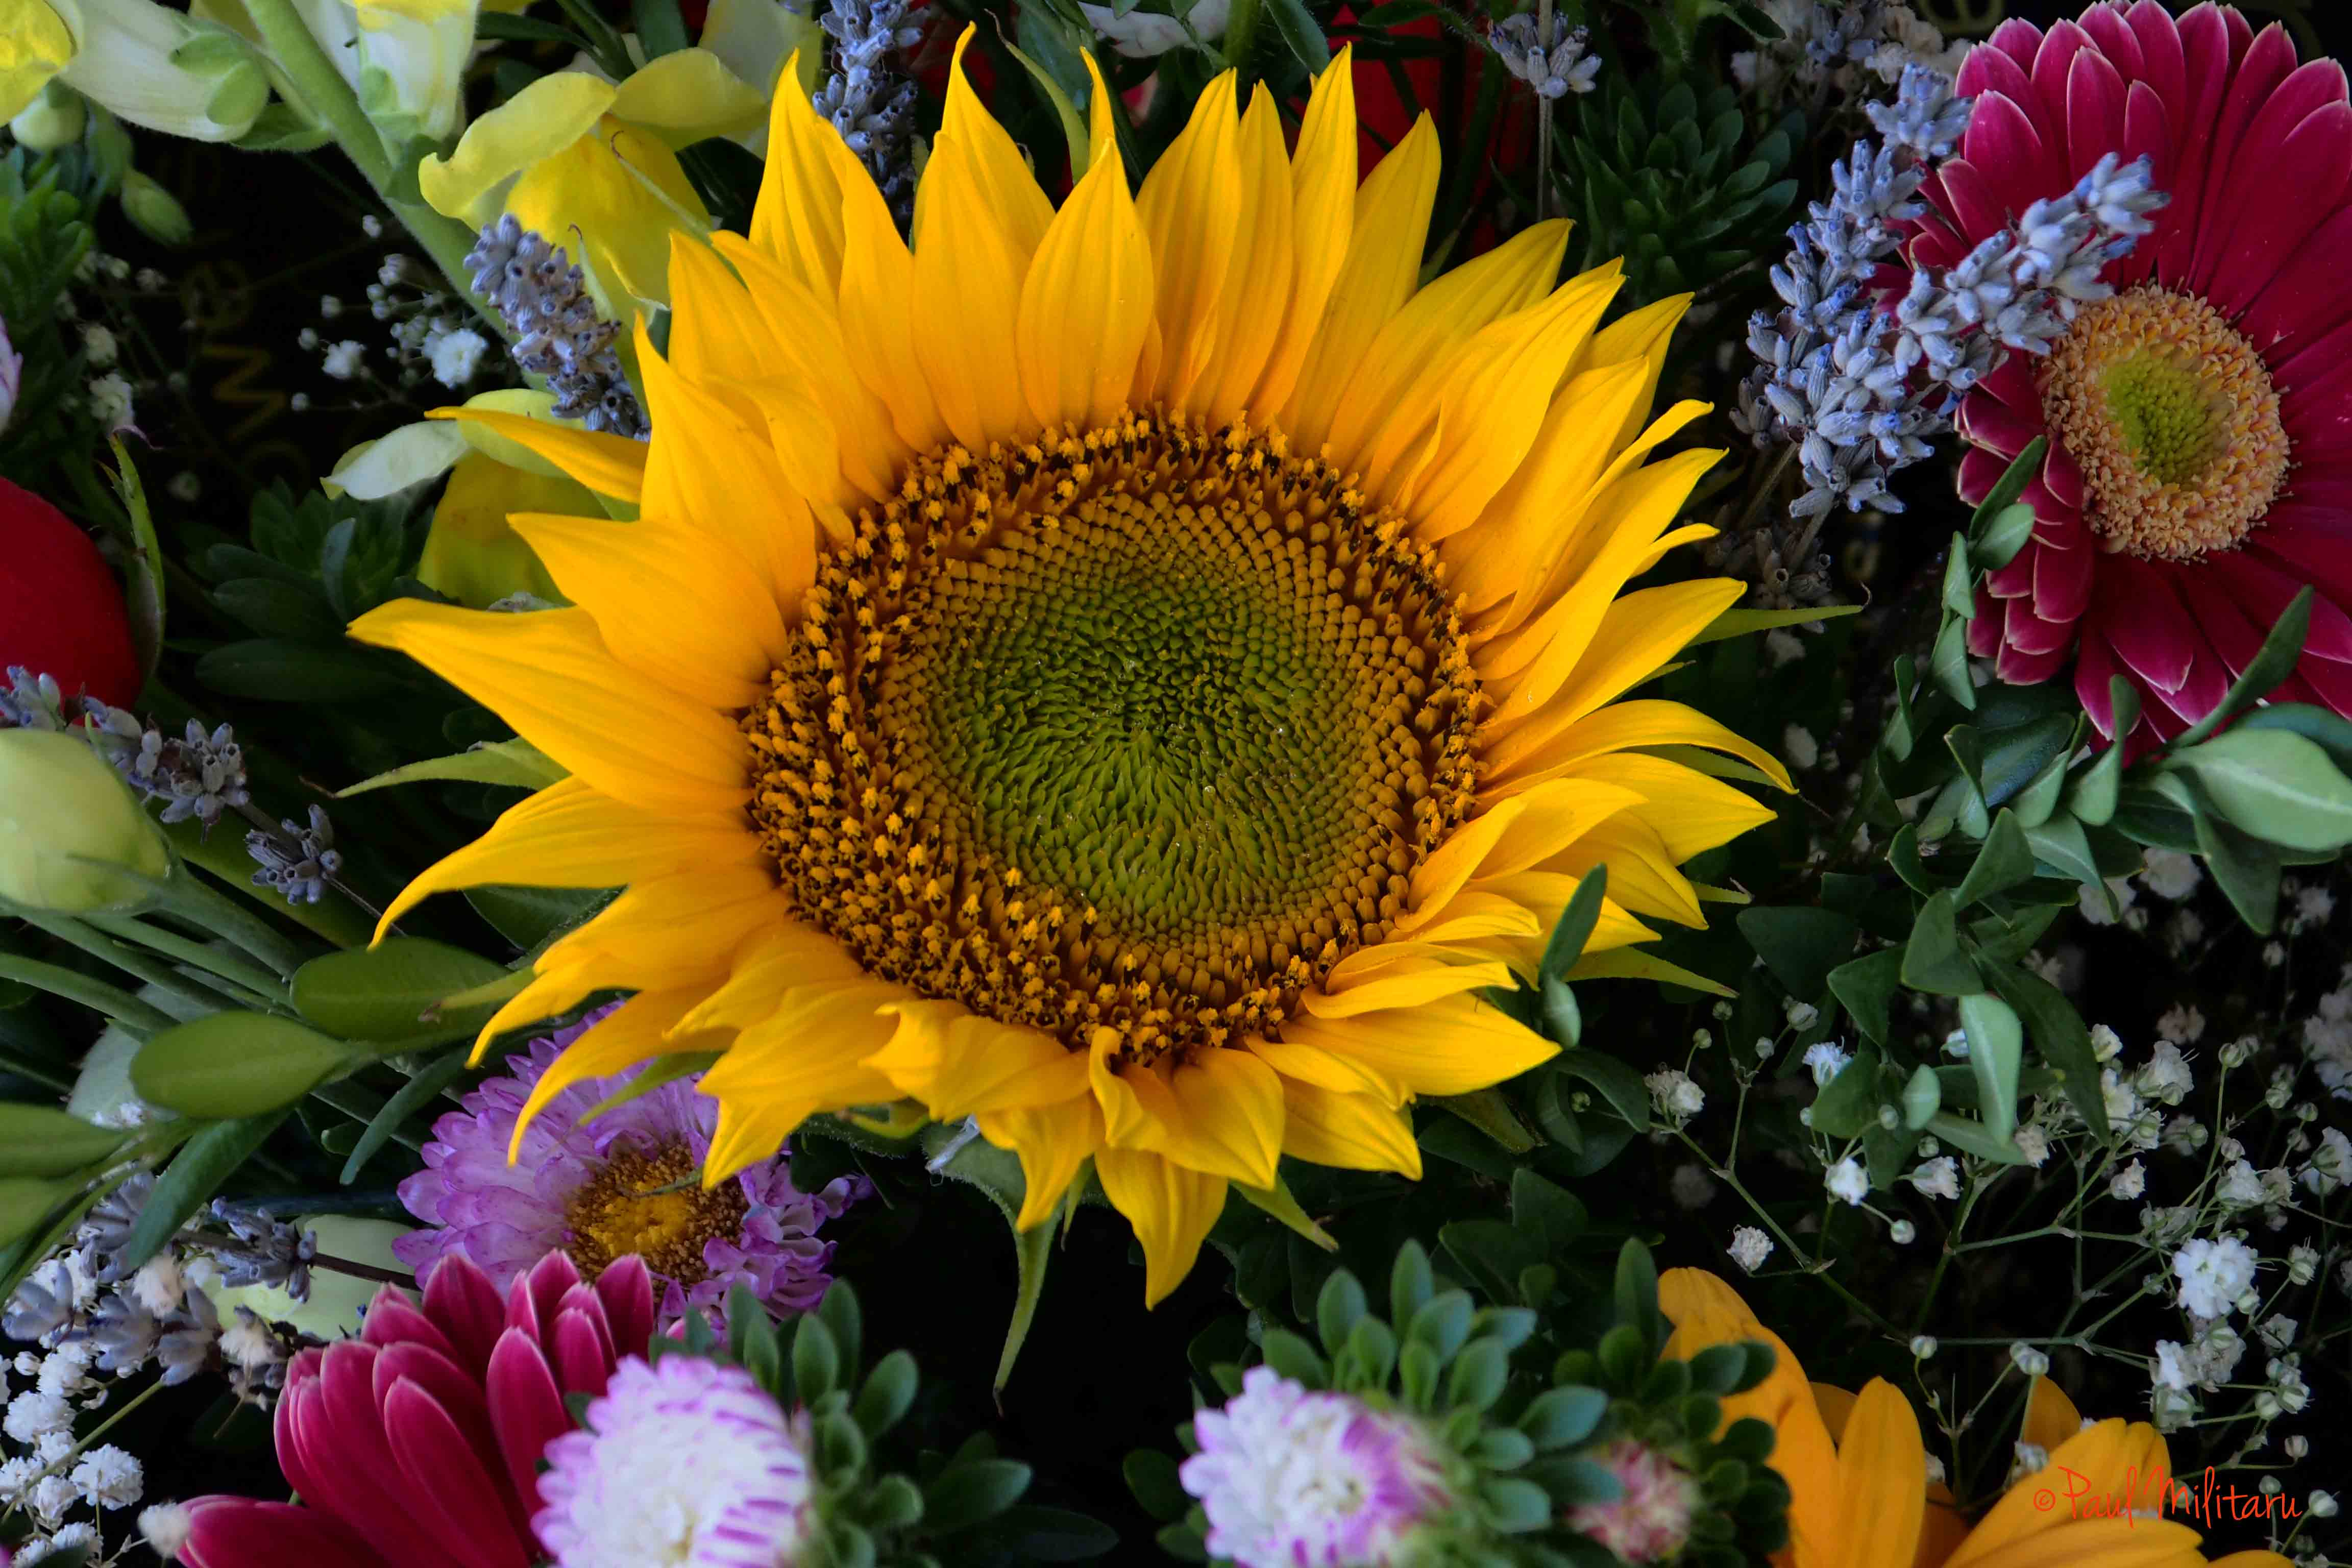 sunflower among other flowers